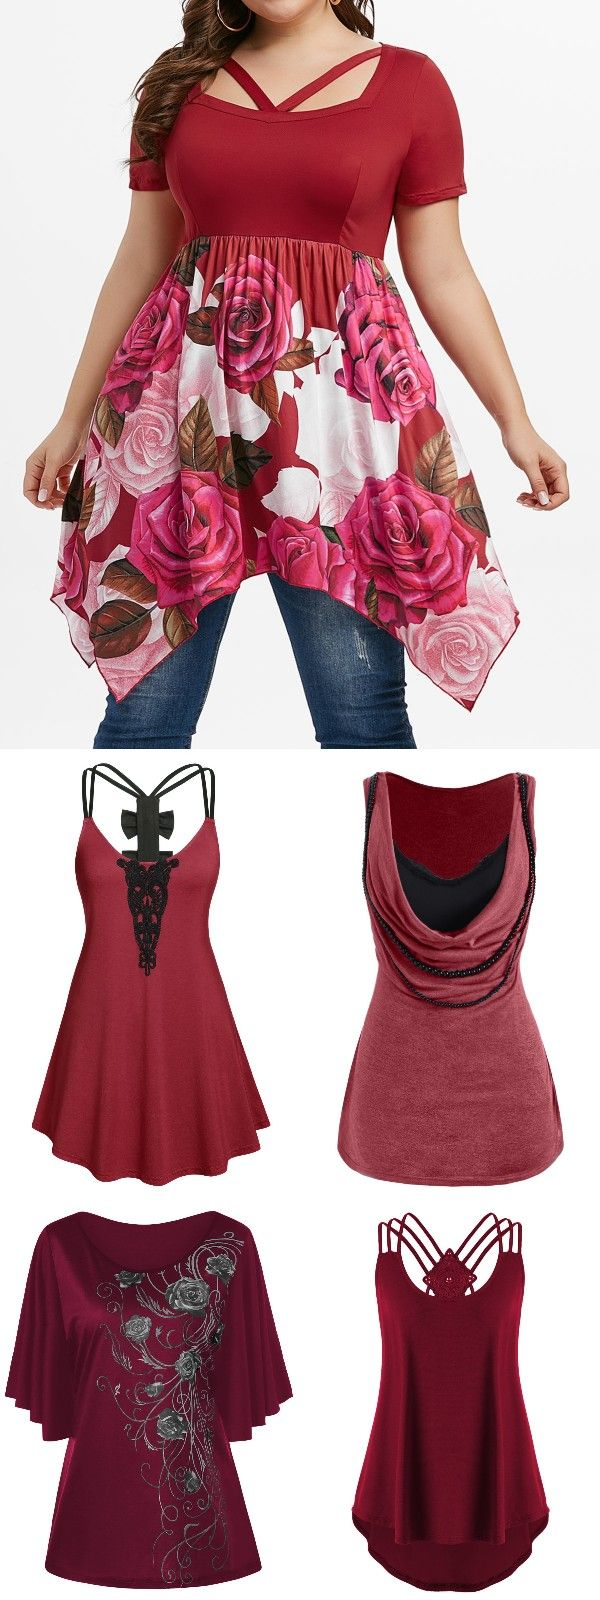 Rosegal plus size red tops, fashion 2020 casual t-shirt ...